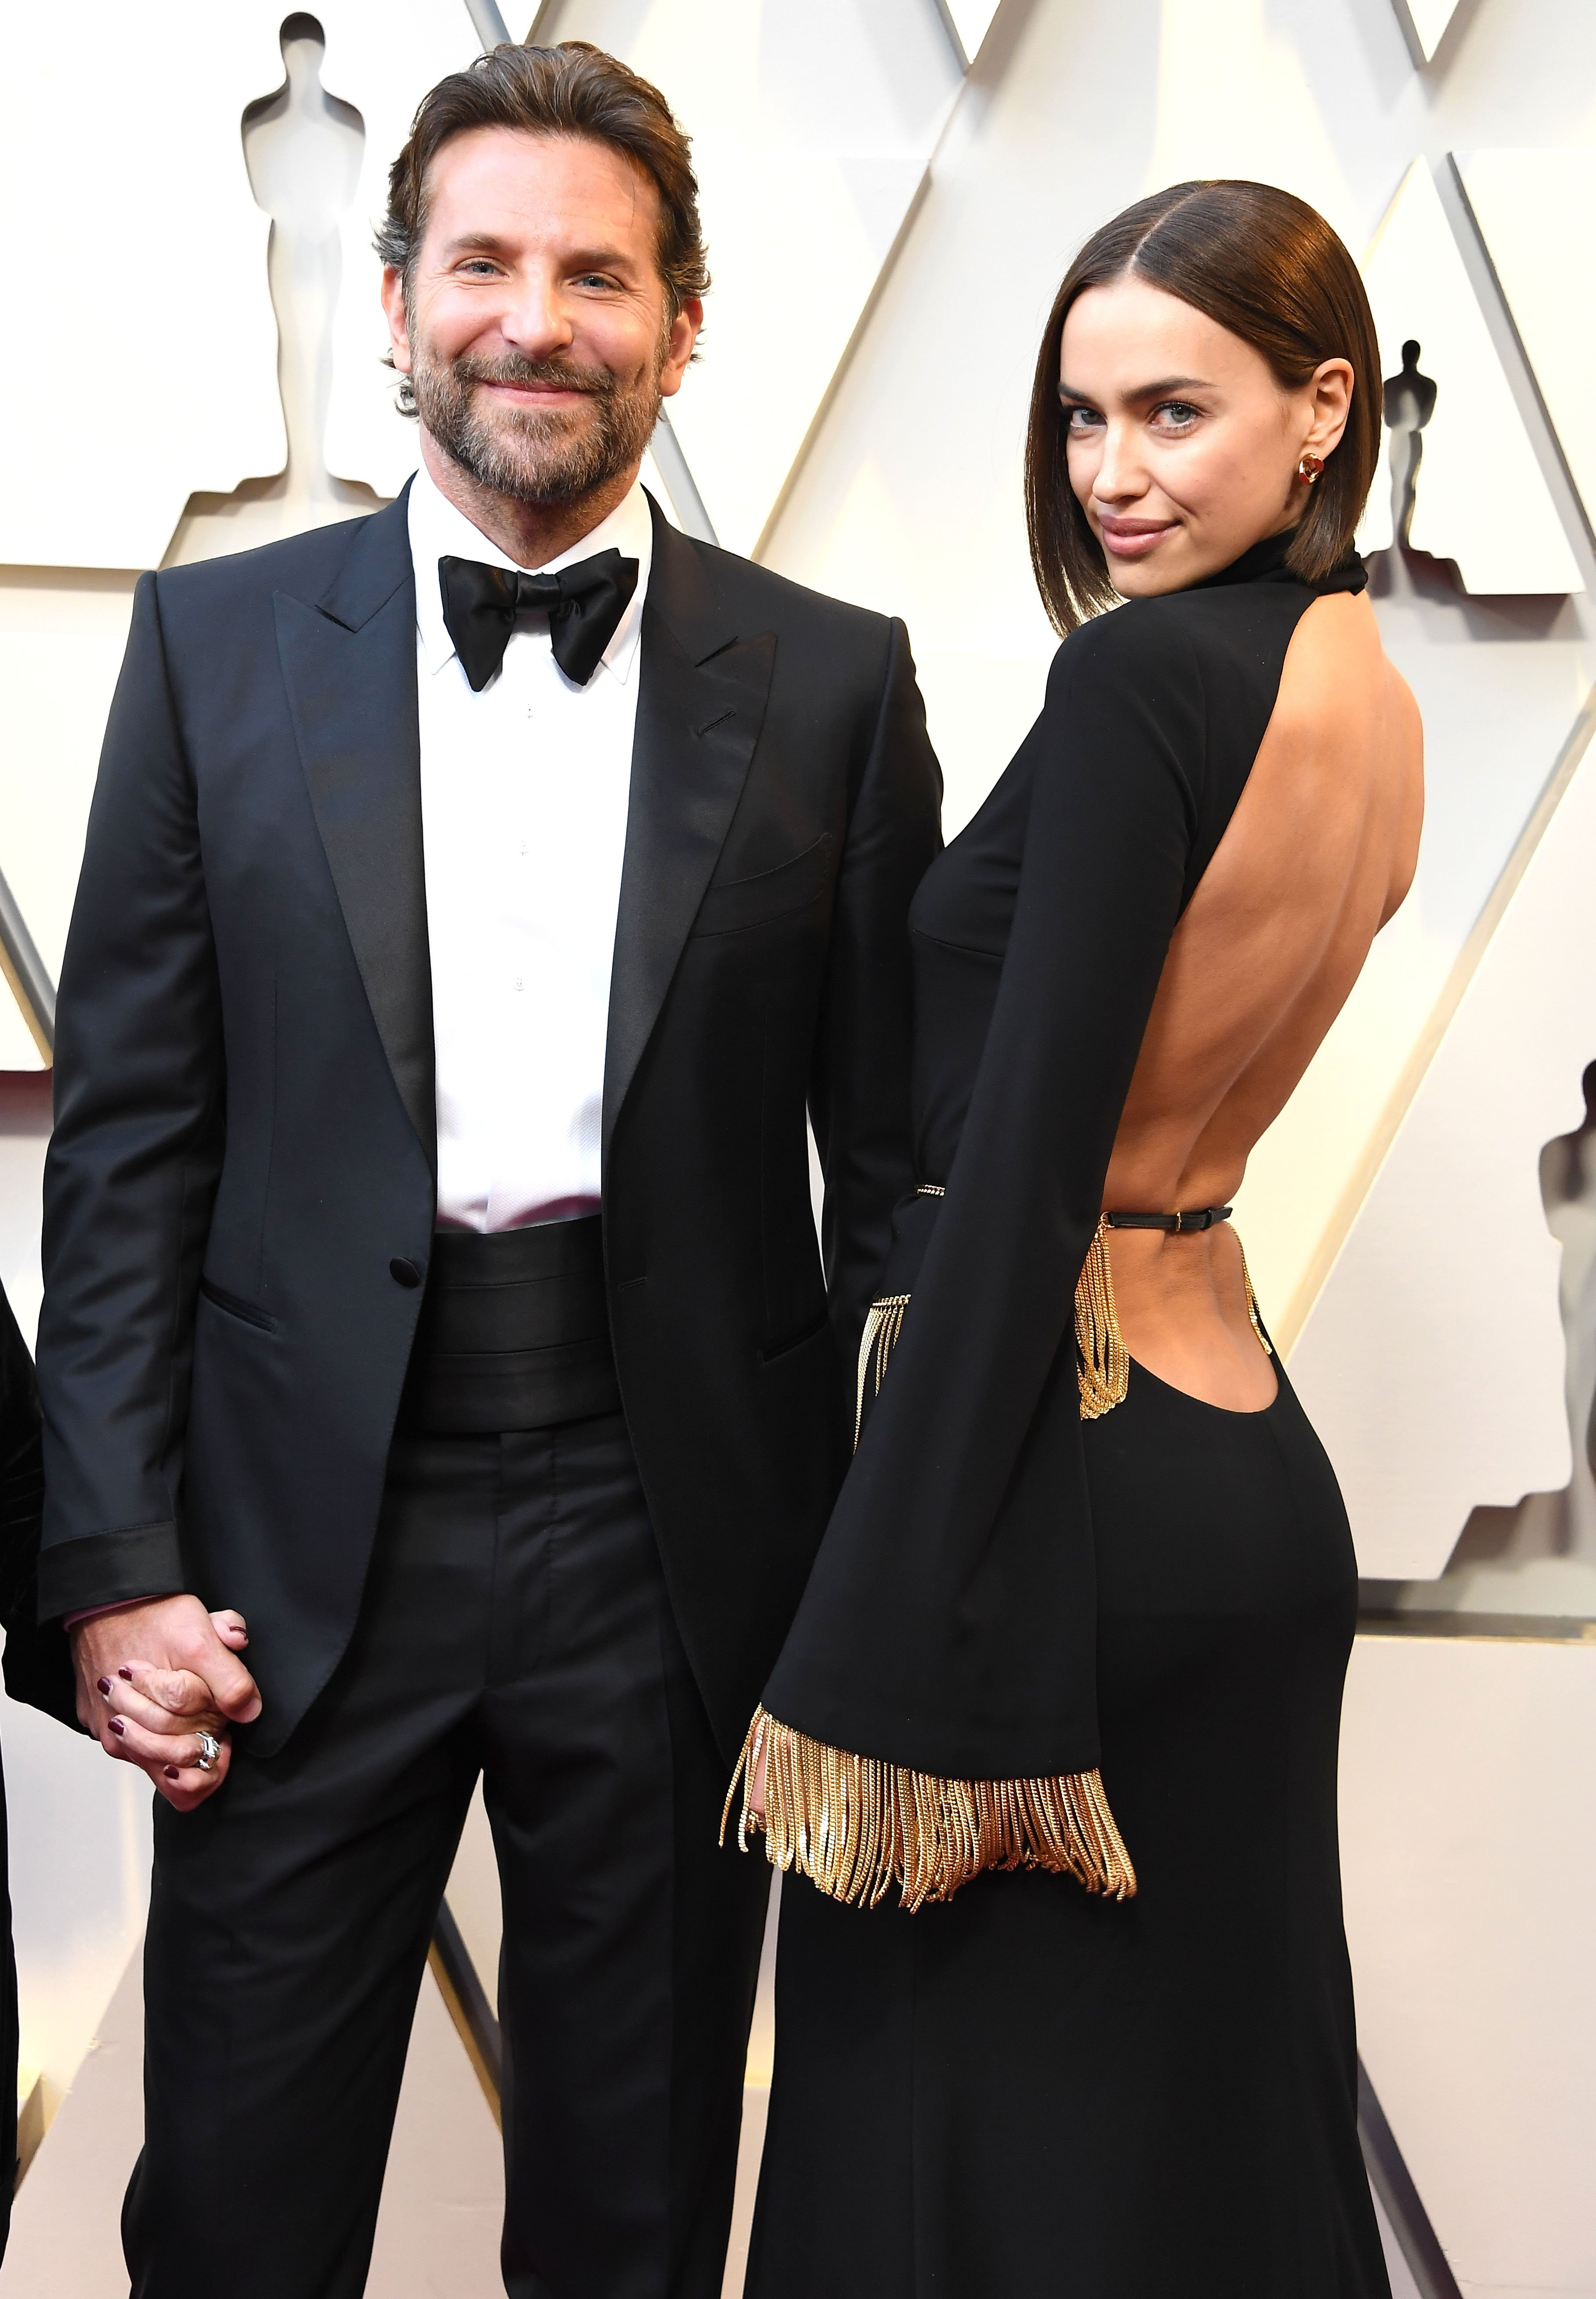 Bradley Cooper and Irina Shayk arrive at the 91st Annual Academy Awards at Hollywood and Highland on February 24, 2019 | Photo: Getty Images